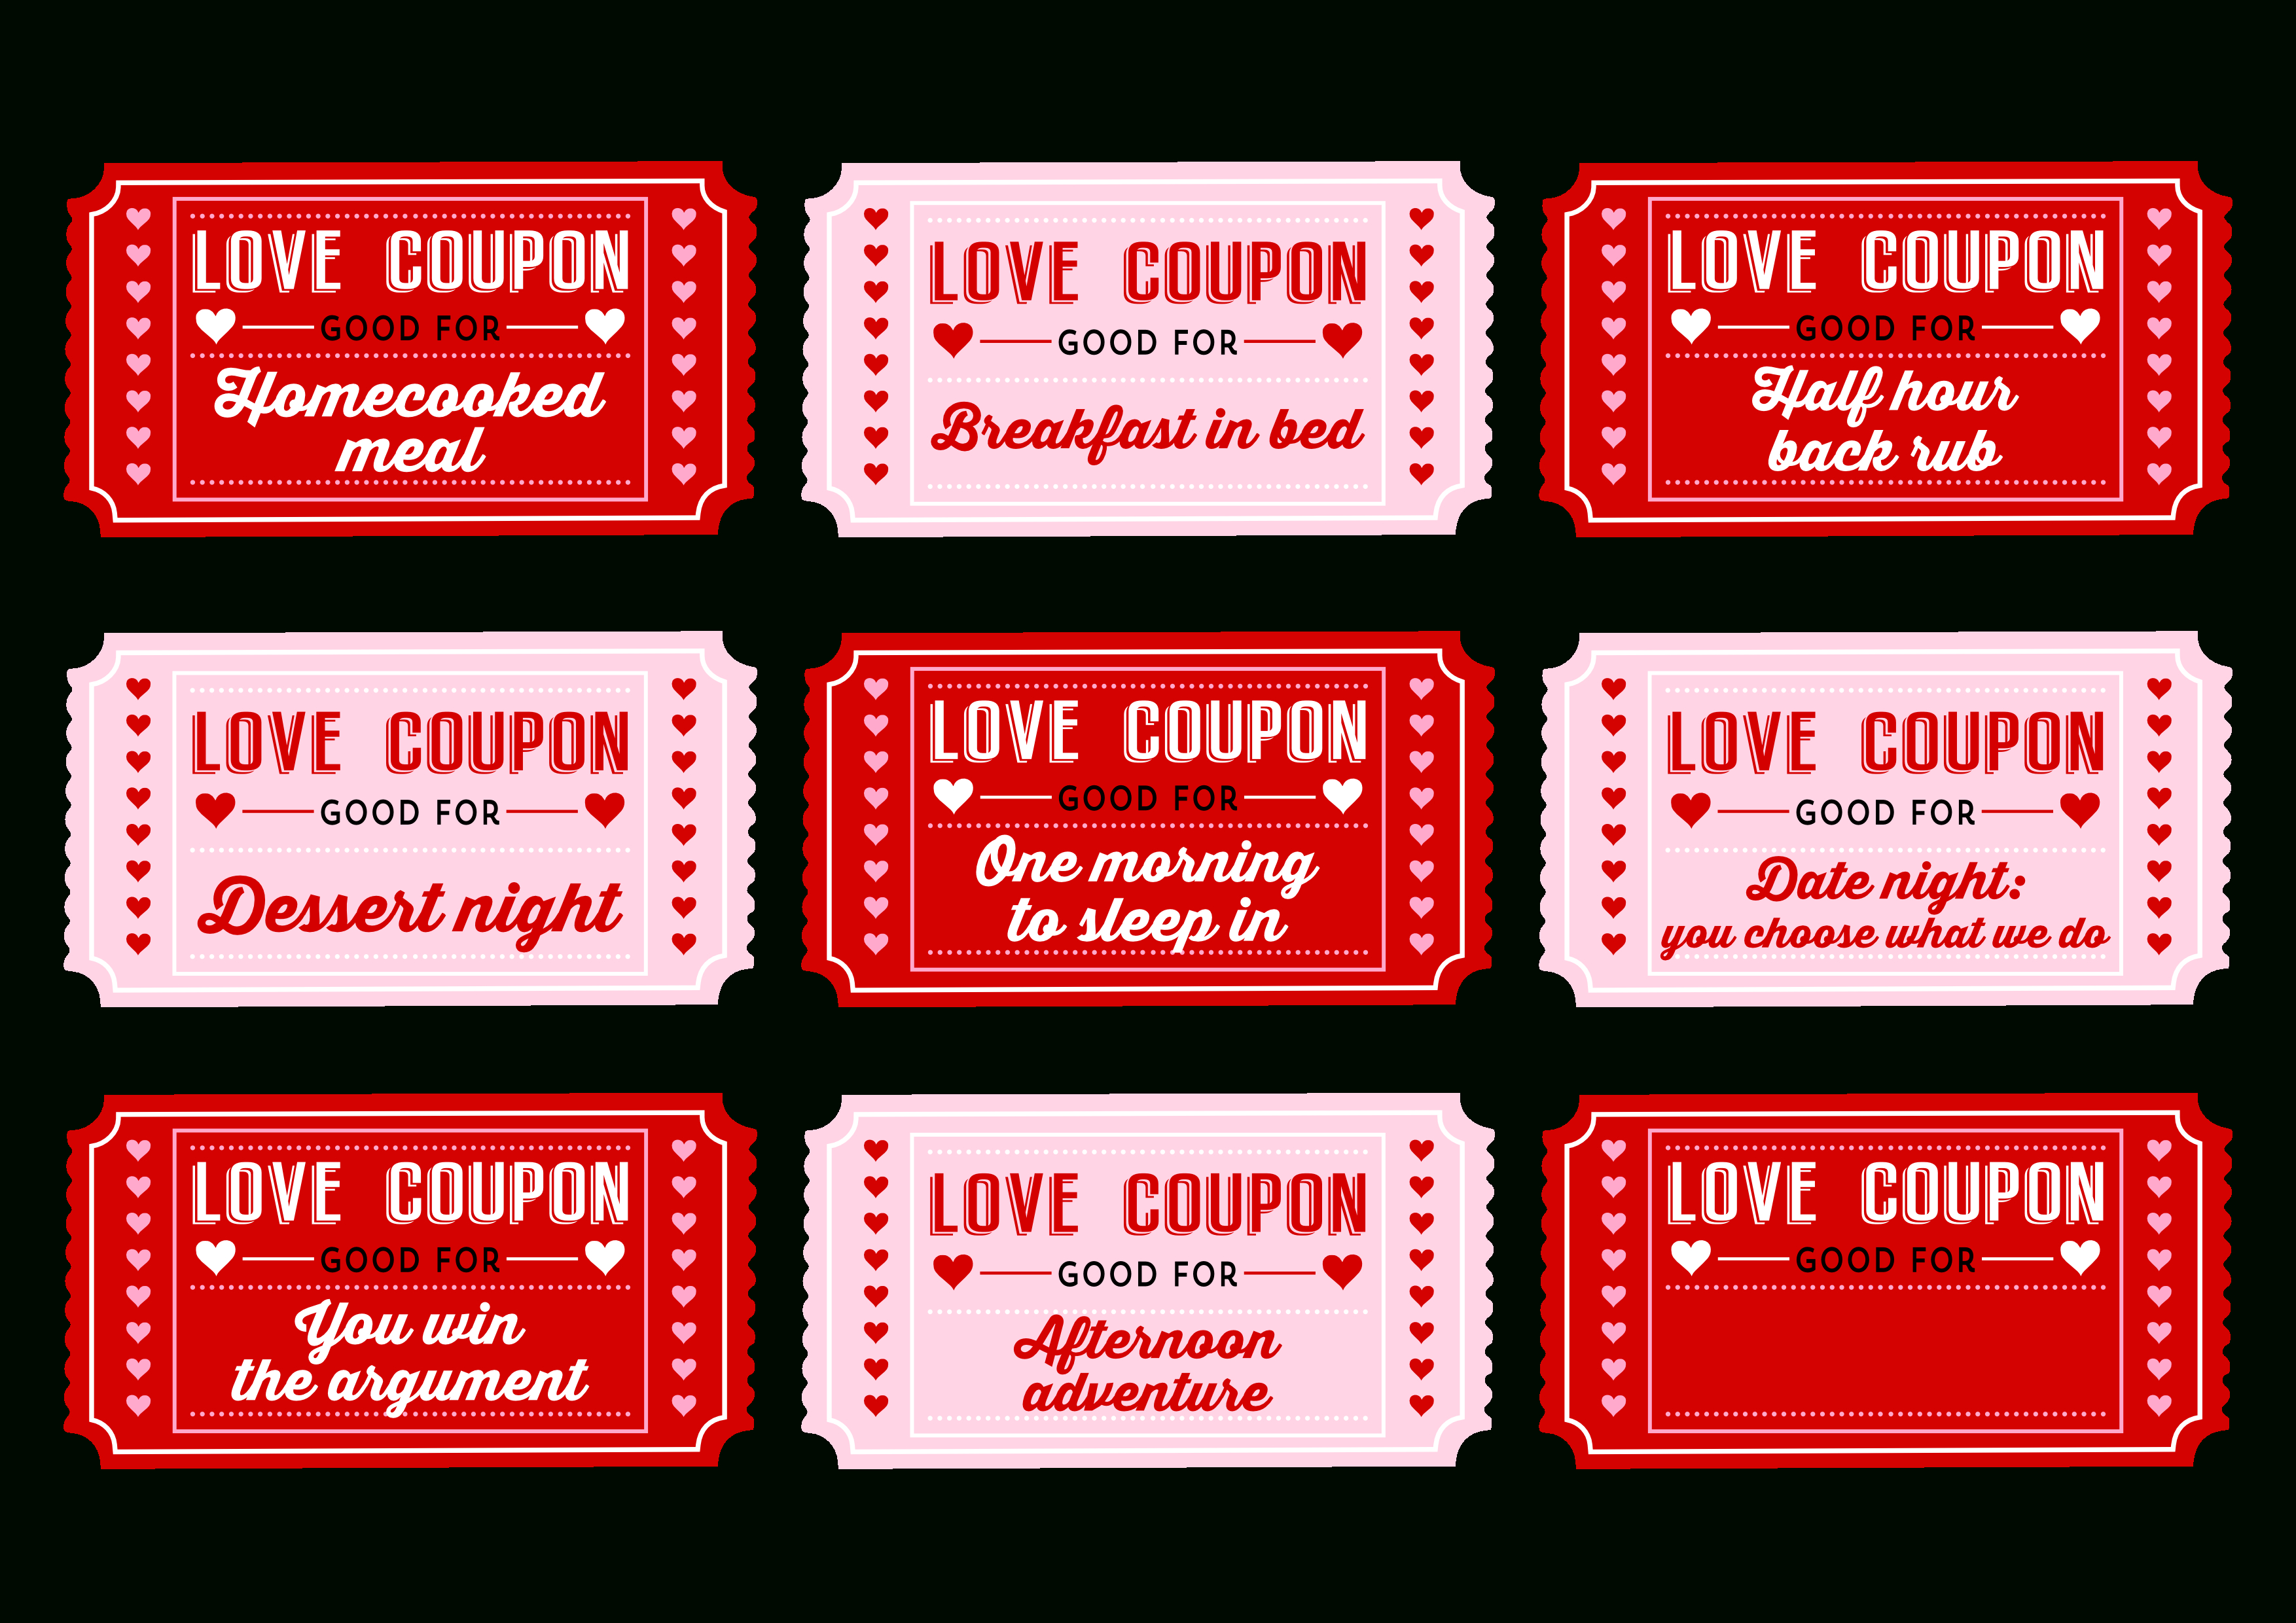 Free Printable Love Coupons For Couples On Valentine's Day! | Decor - Free Printable Love Certificates For Him